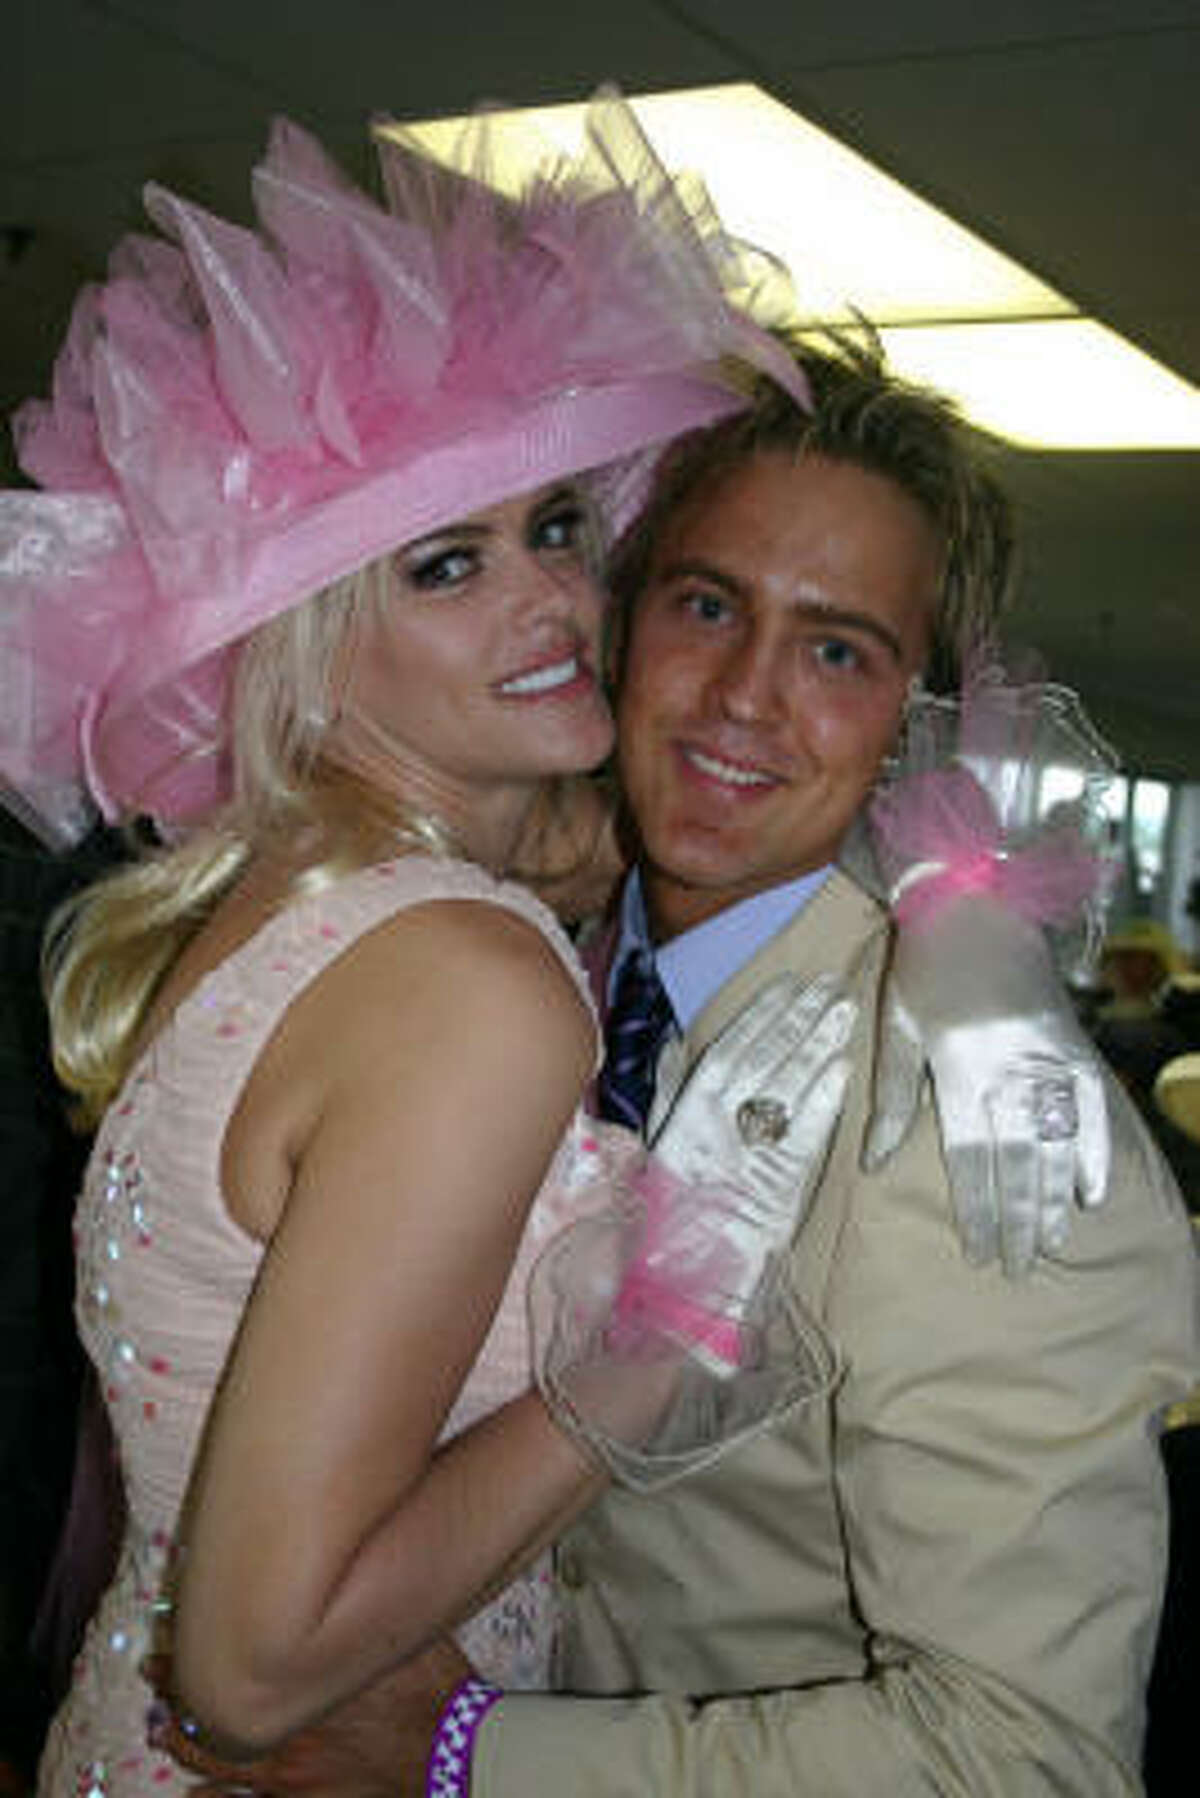 This is the dress Anna Nicole Smith wore to the derby that can now be seen in the Derby museum.